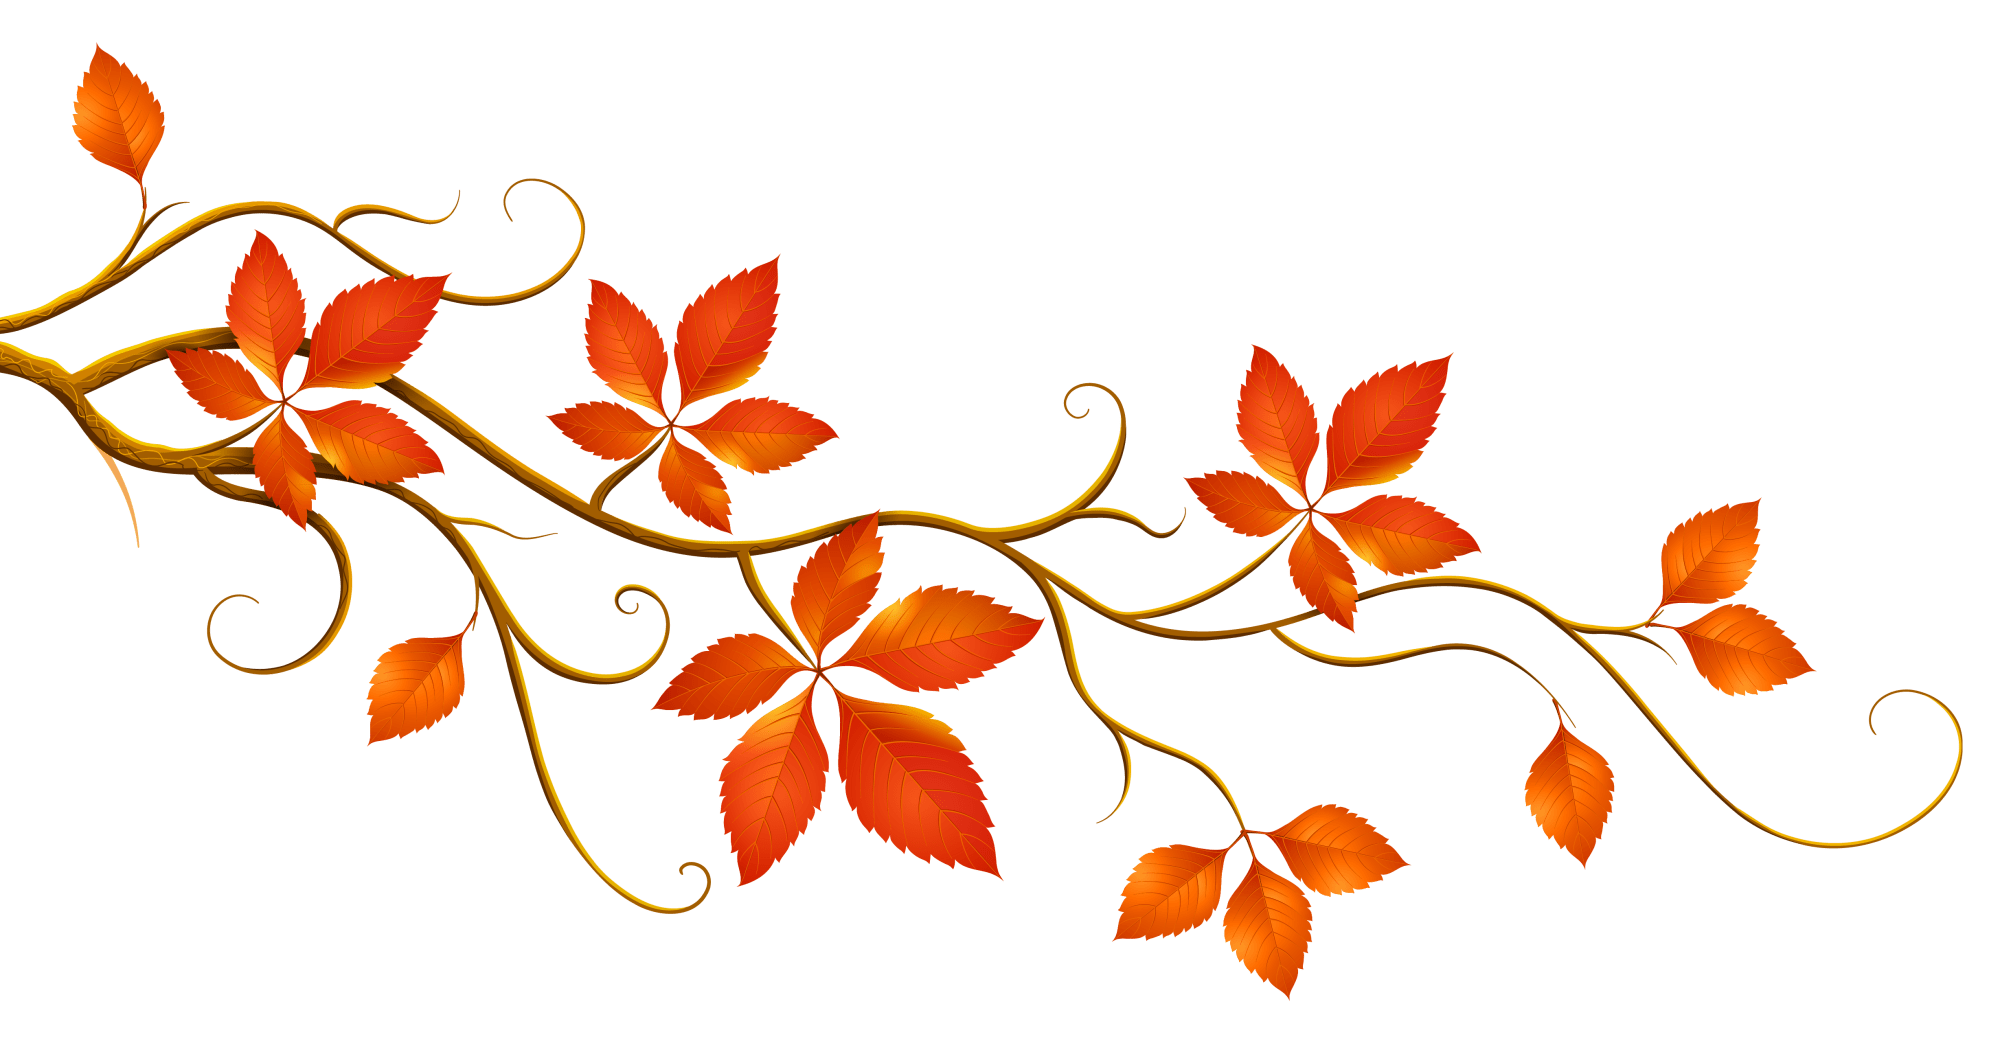 hight resolution of fall leaves fall autumn free clipart the cliparts